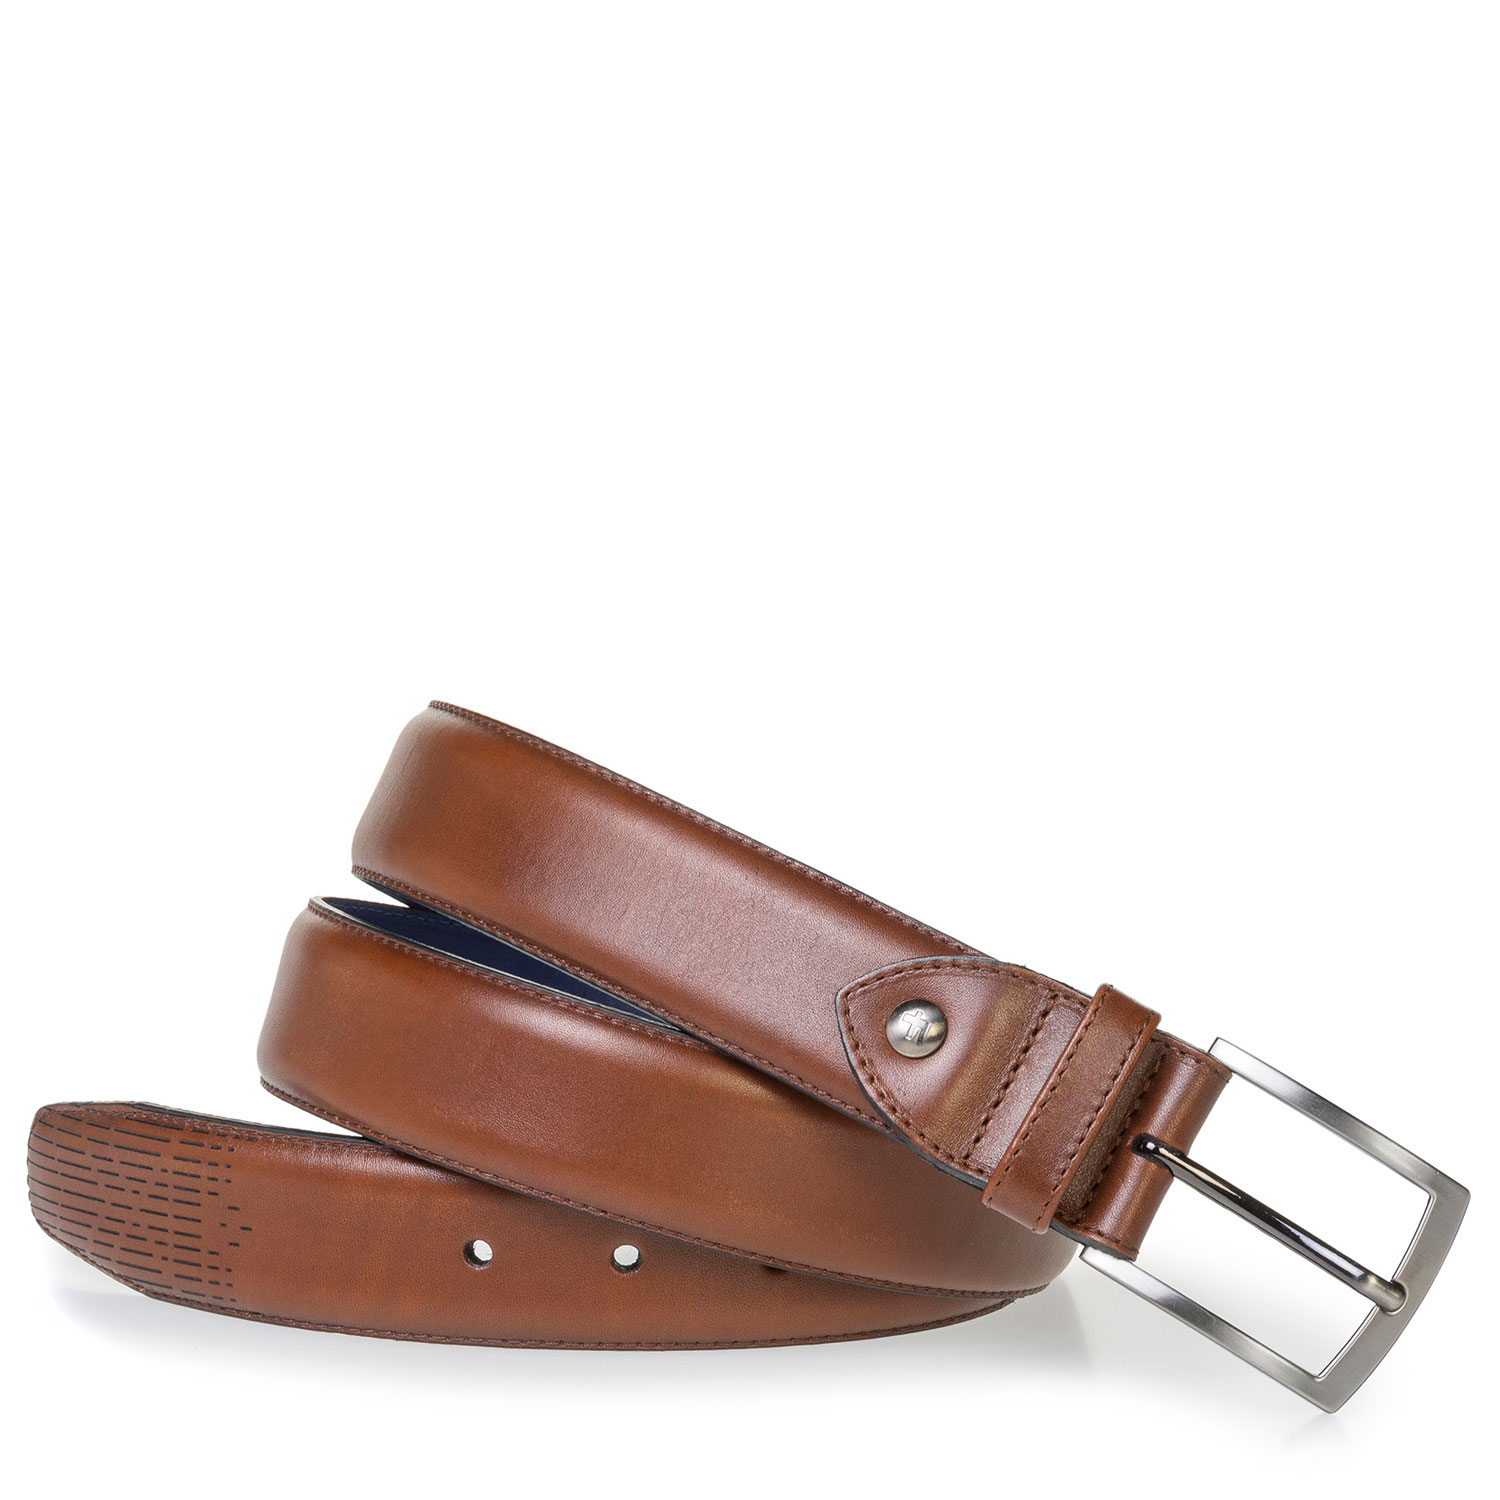 75214/00 - Dark cognac-coloured calf leather belt